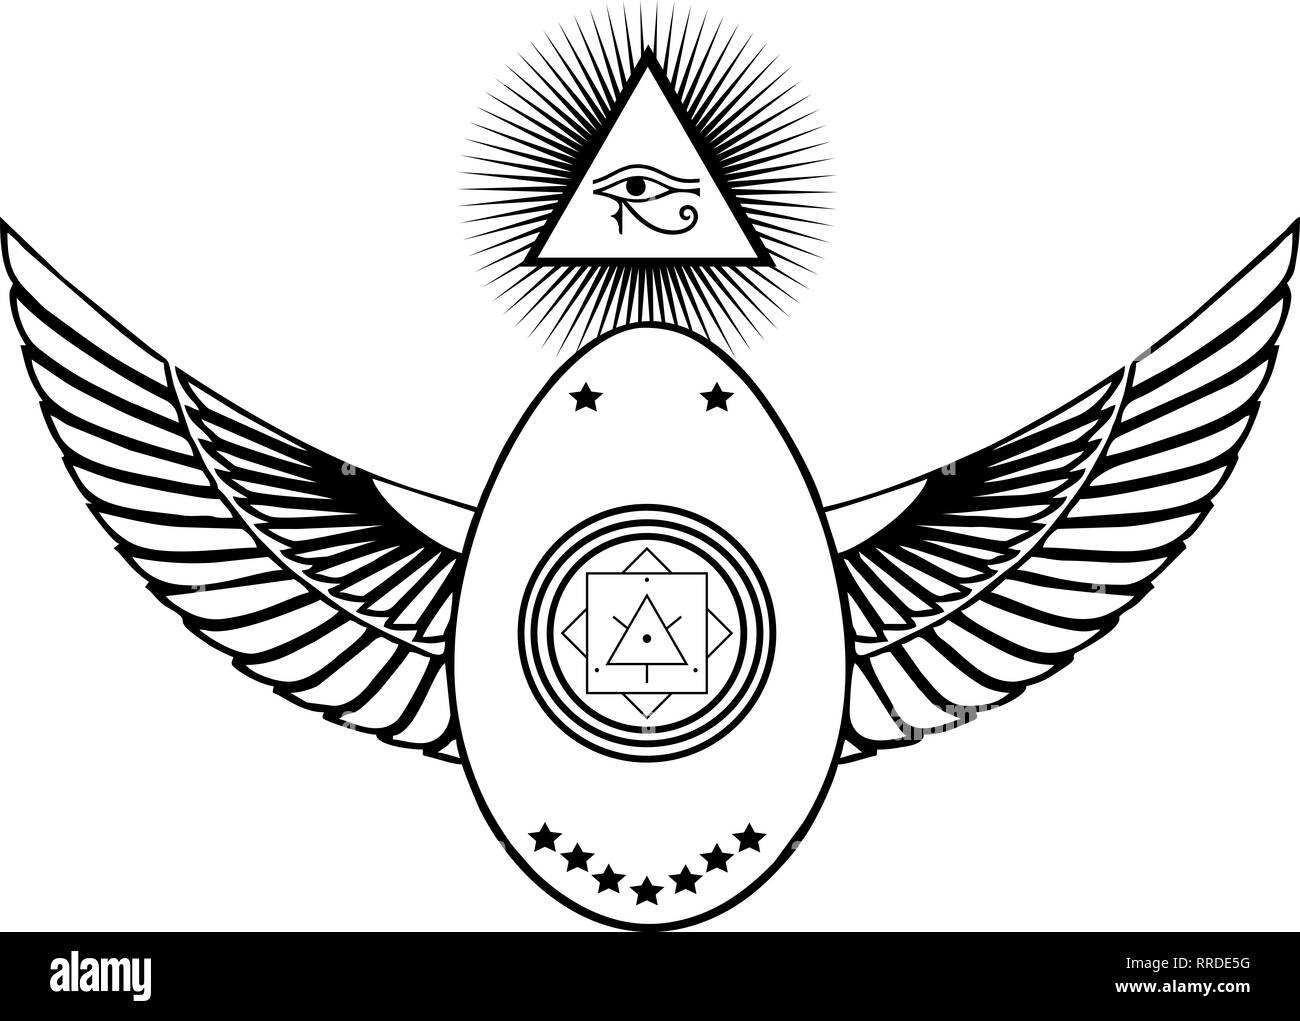 Mason, Skarabäus, All seeing Eye, Ägypten Berge/Freimaurer Stockbild